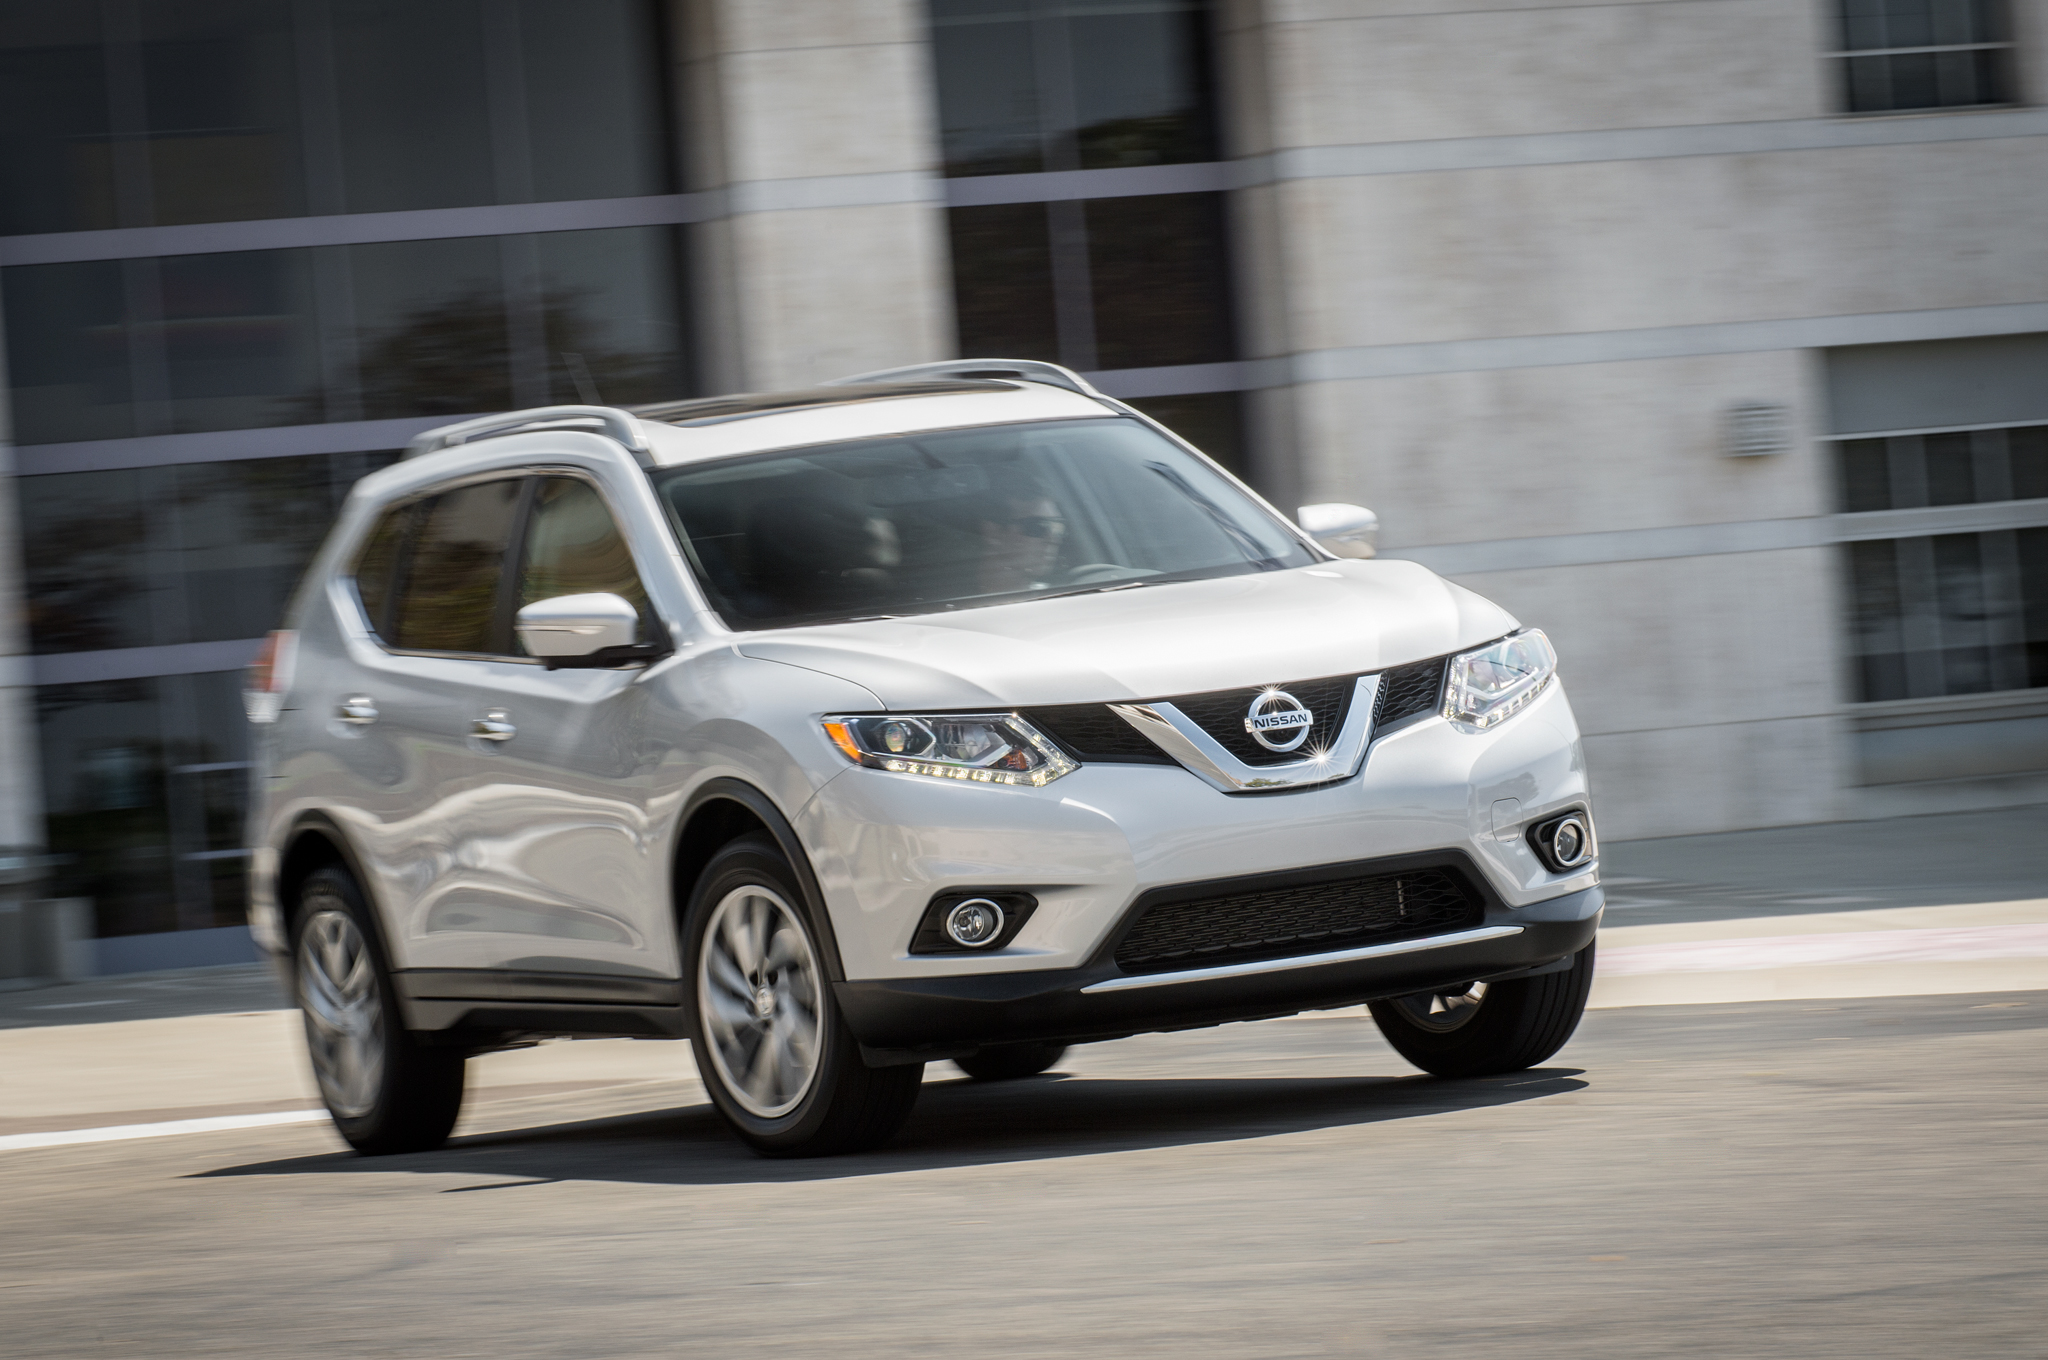 Nissan Rogue Owners Manual: Changing engine oil